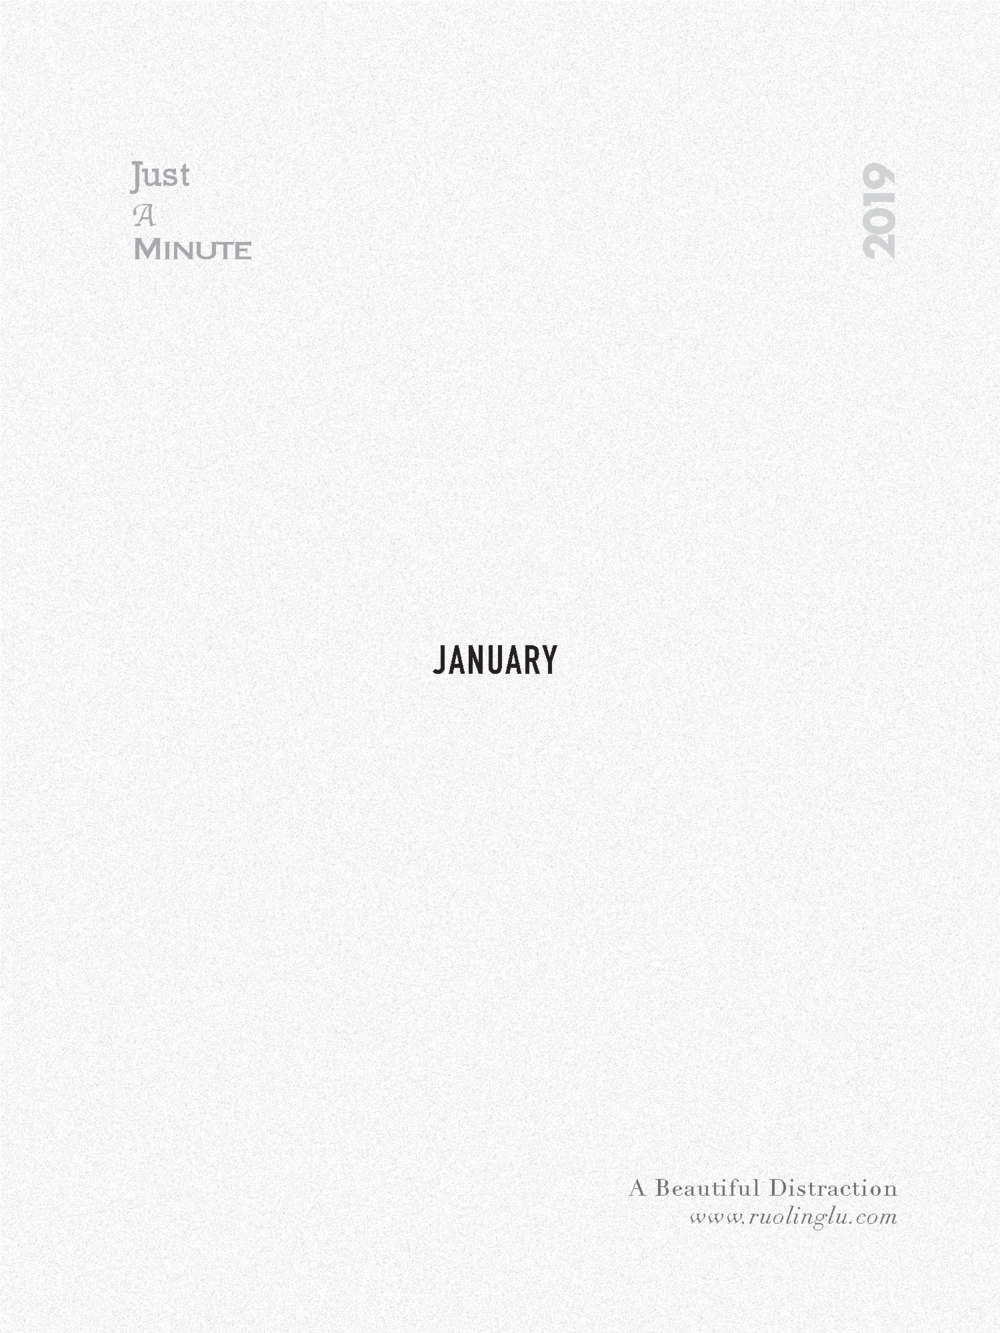 Just_A_Minute_In_January_2019_A_Beautiful_Distraction_by_Ruo_Ling_Lu